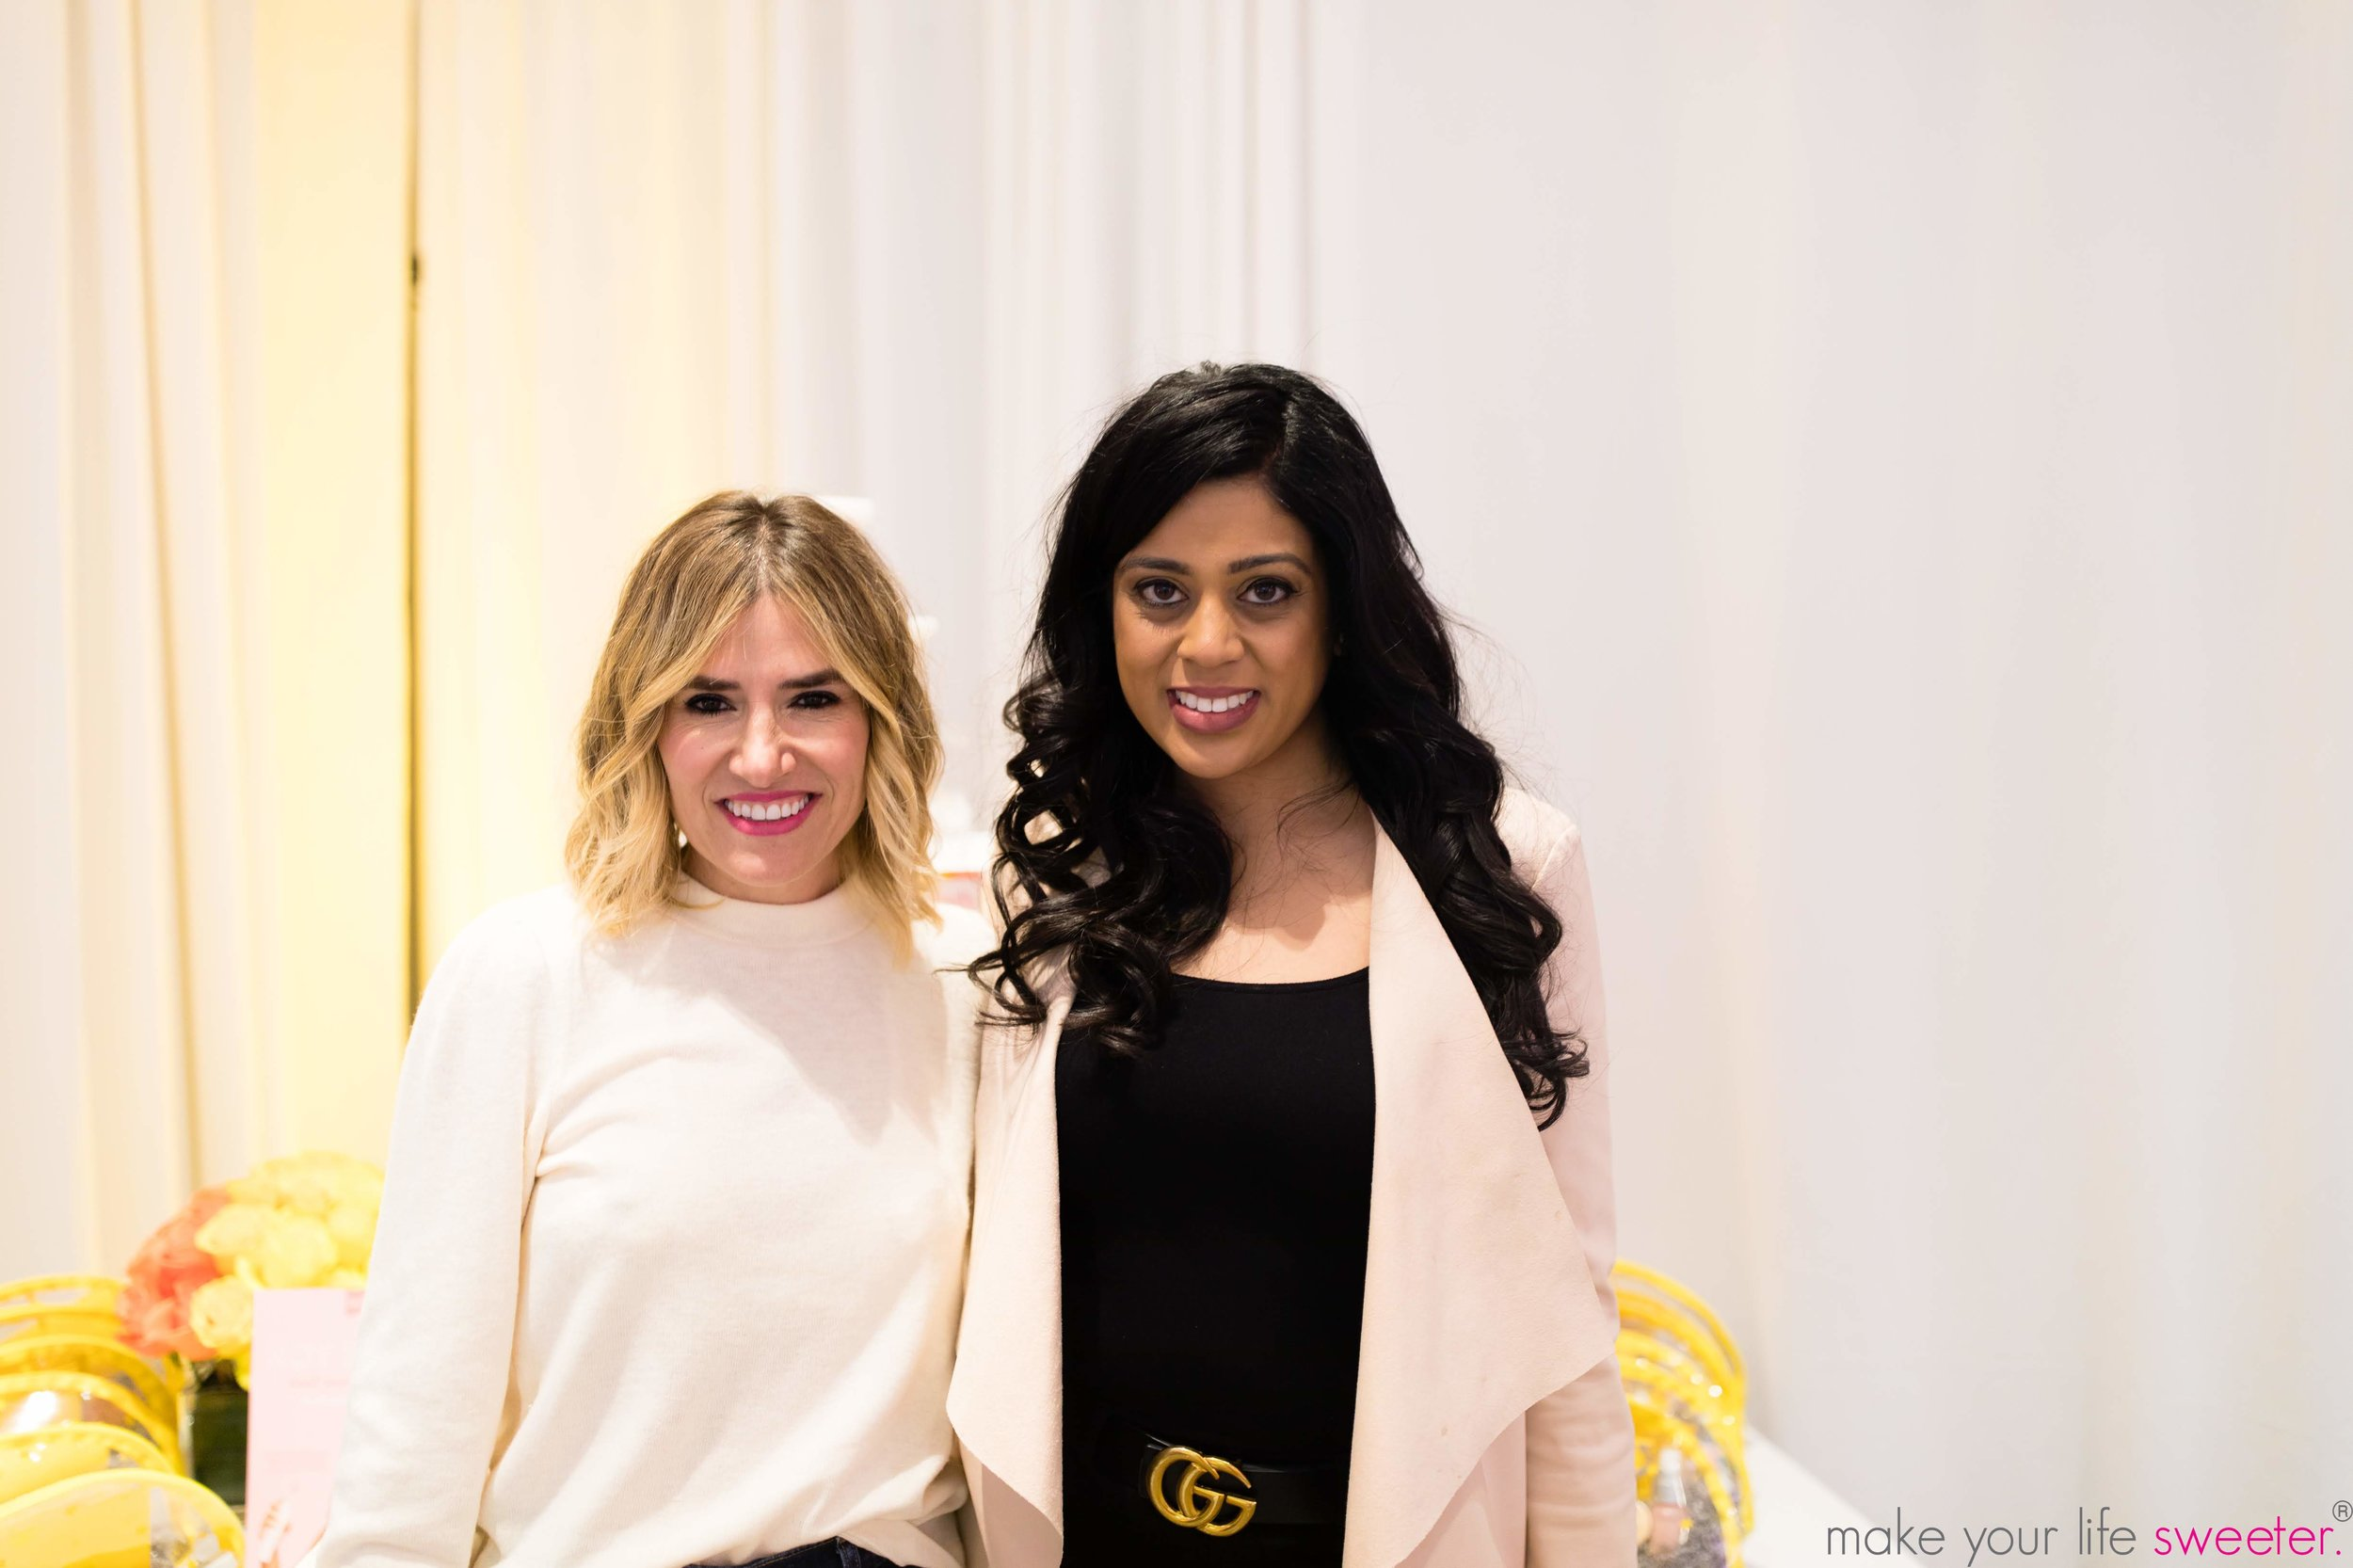 Make Your Life Sweeter Events - Drybar event - Yasmeen Tadia and Alli Webb